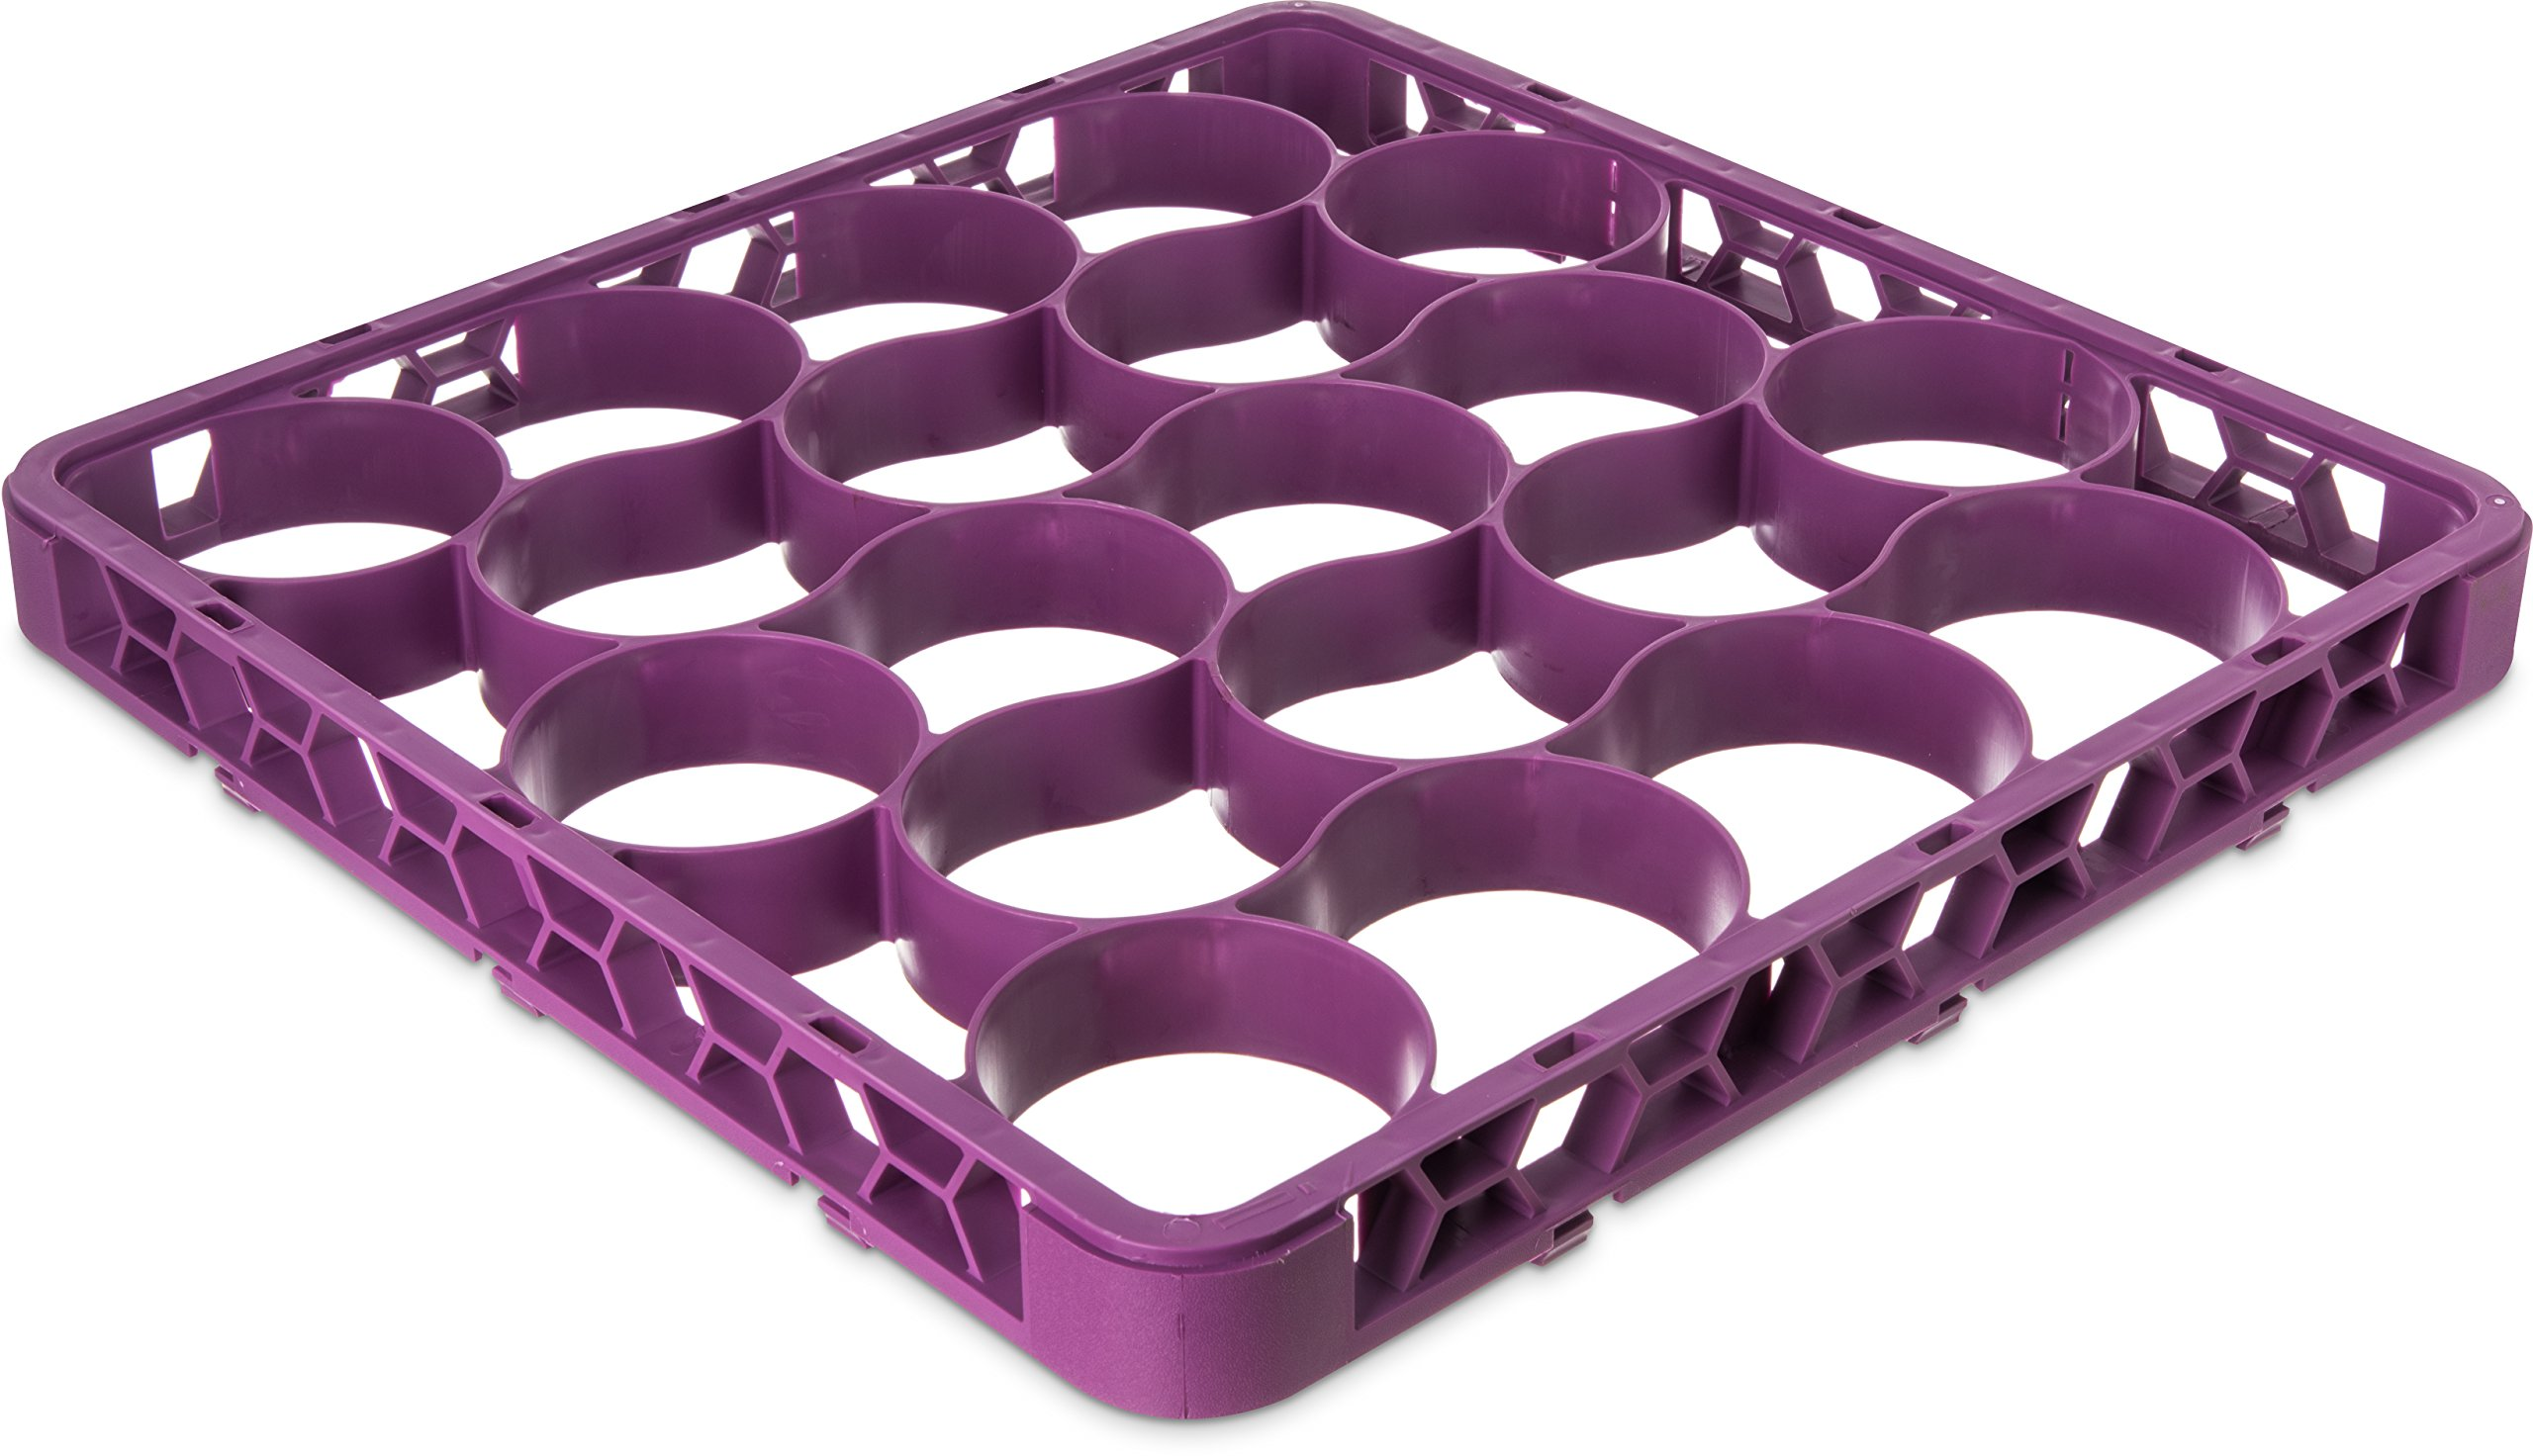 Carlisle REW20SC89 OptiClean NeWave 20 Compartment Glass Rack Extender, Lavender (Pack of 6)